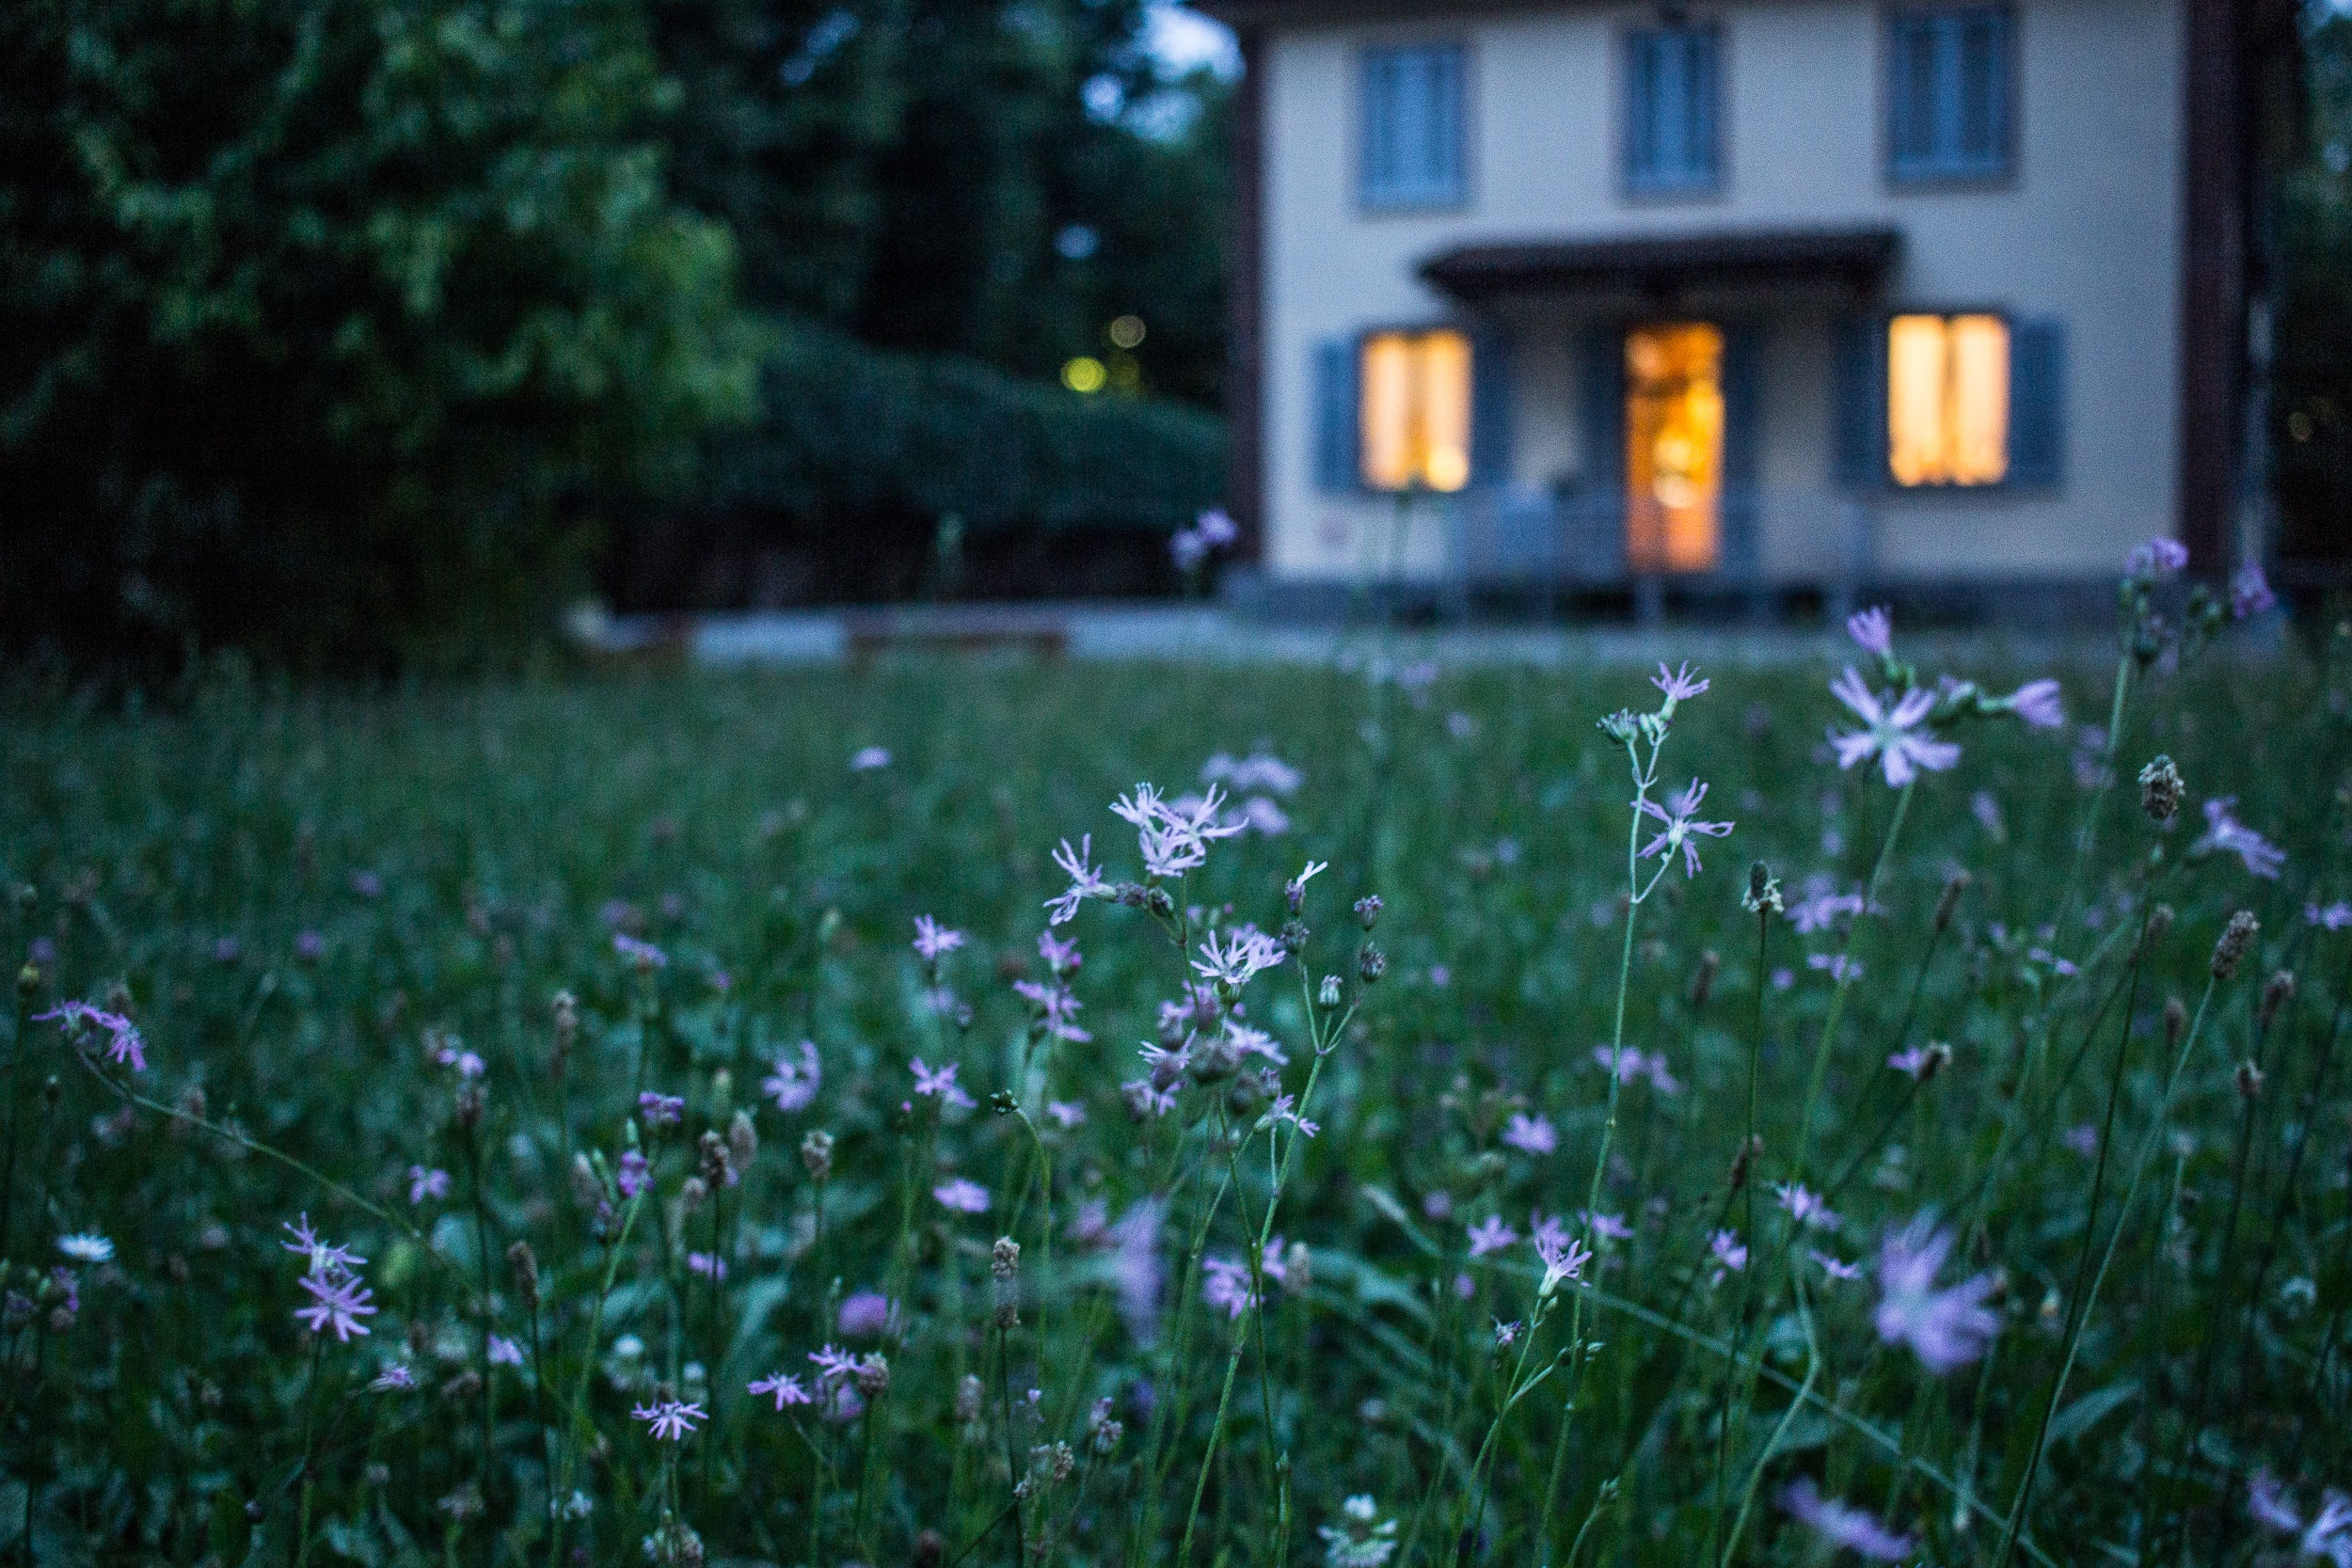 blurred home in the background of a lawn with lilac wildflowers growing